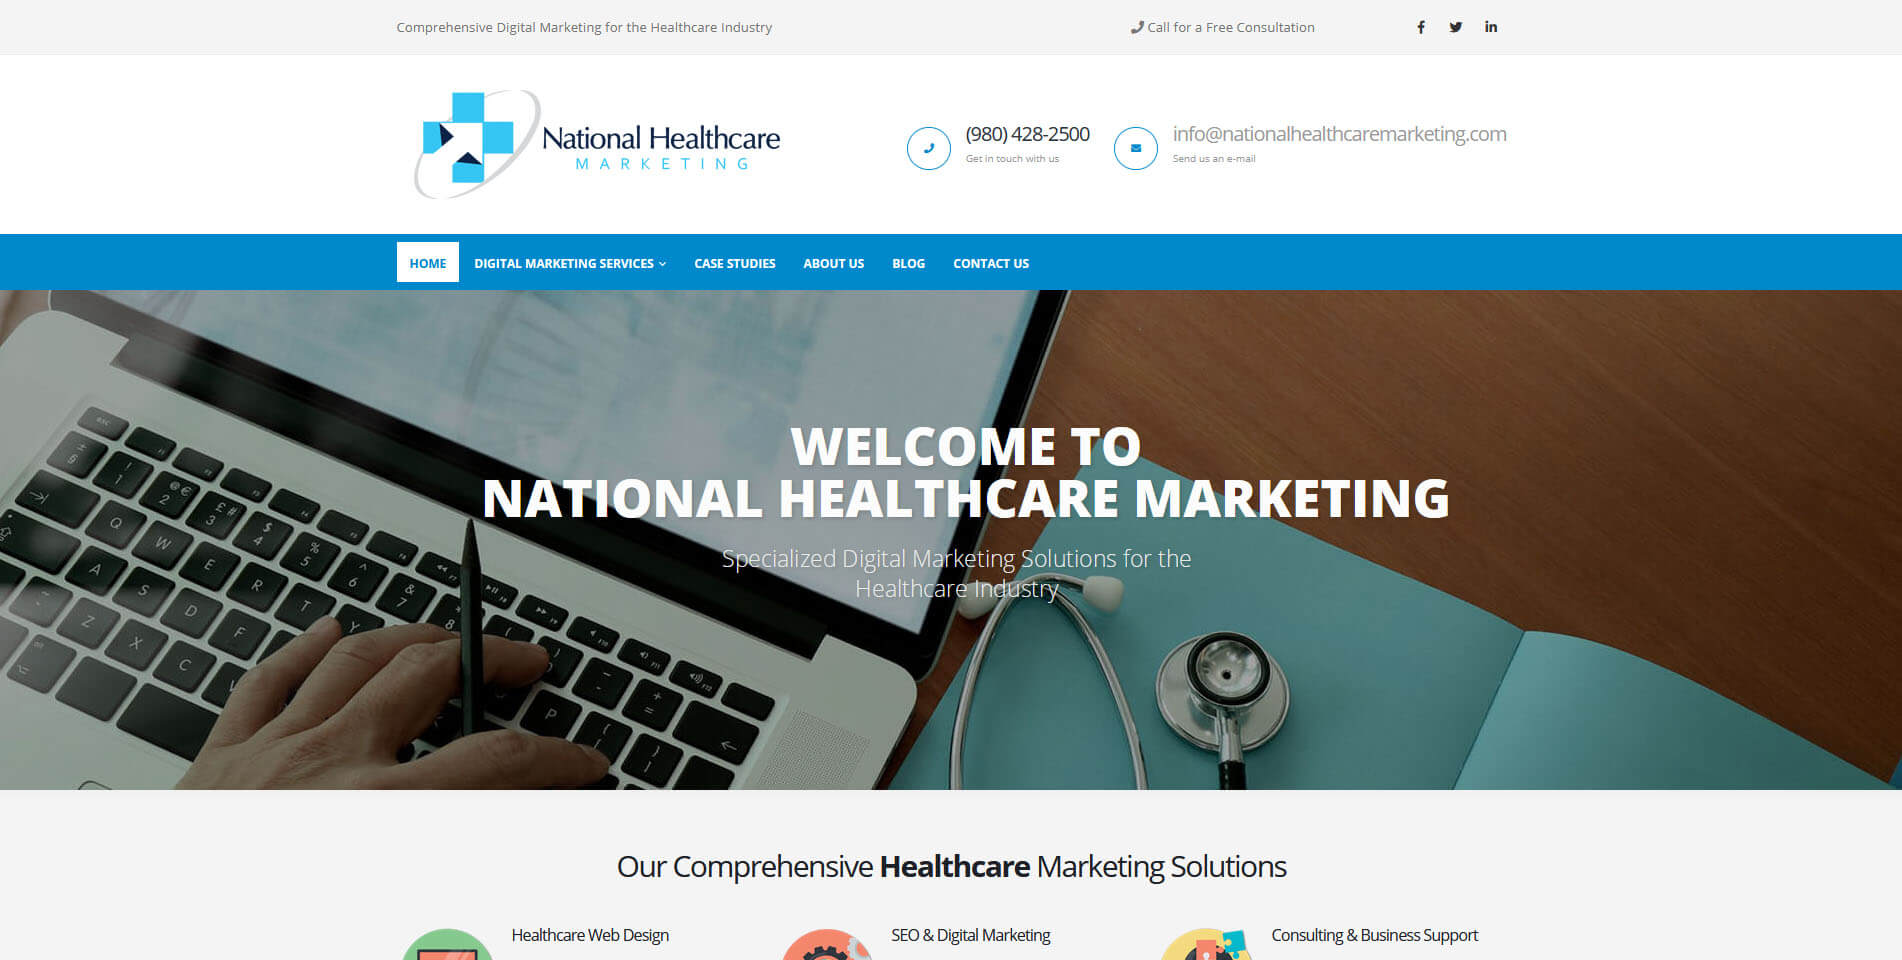 An image of the homepage of National Healthcare Marketing, website created by Not Fade Away Marketing